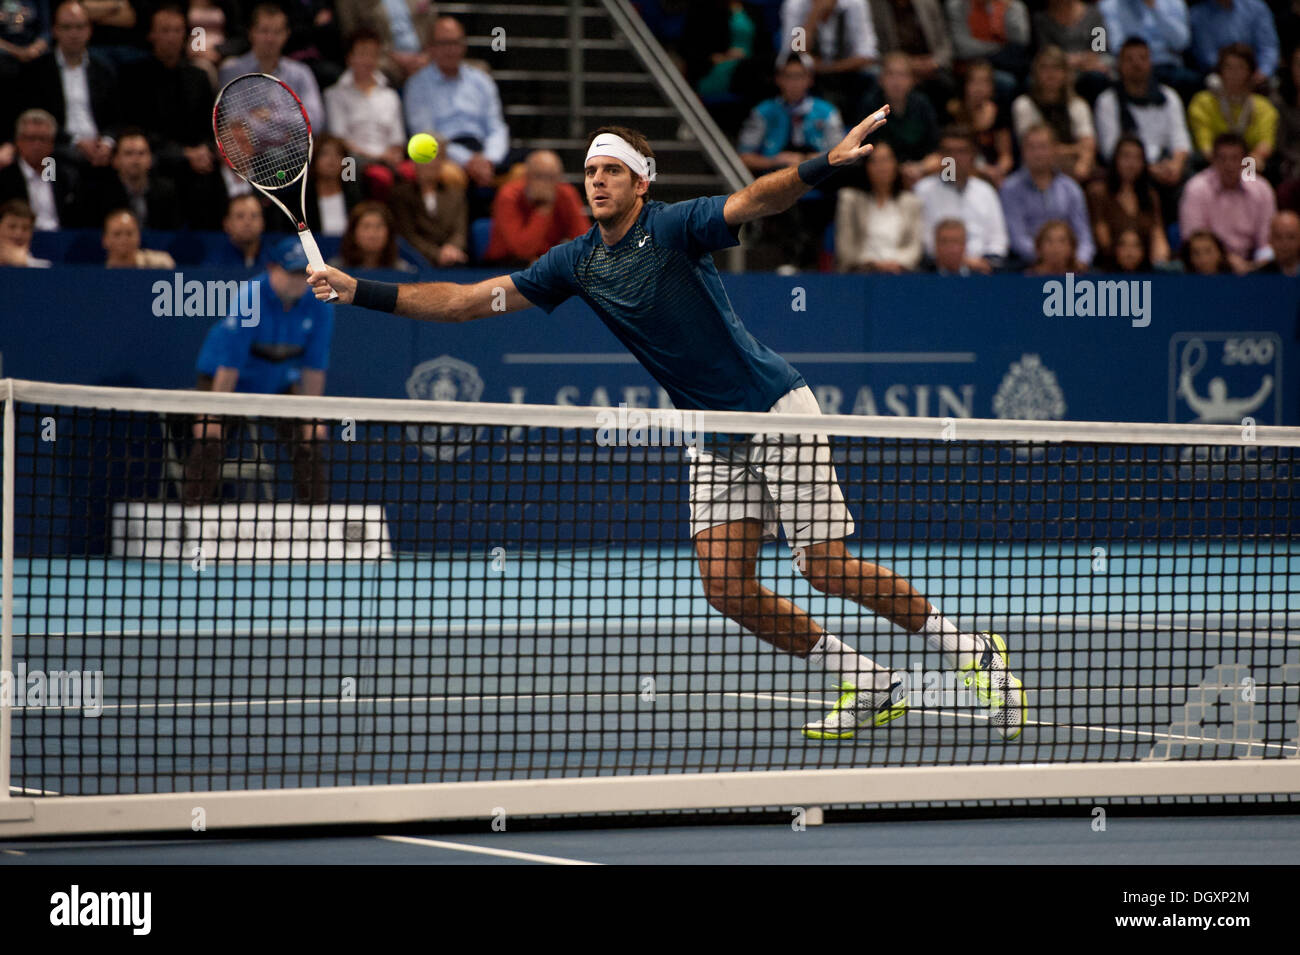 Basel, Switzerland. 27th Oct, 2013. J.M. Del Potro (ARG) reaches for the ball at the net during the final of the Swiss Indoors at St. Jakobshalle on Sunday. Photo: Miroslav Dakov/ Alamy Live News - Stock Image